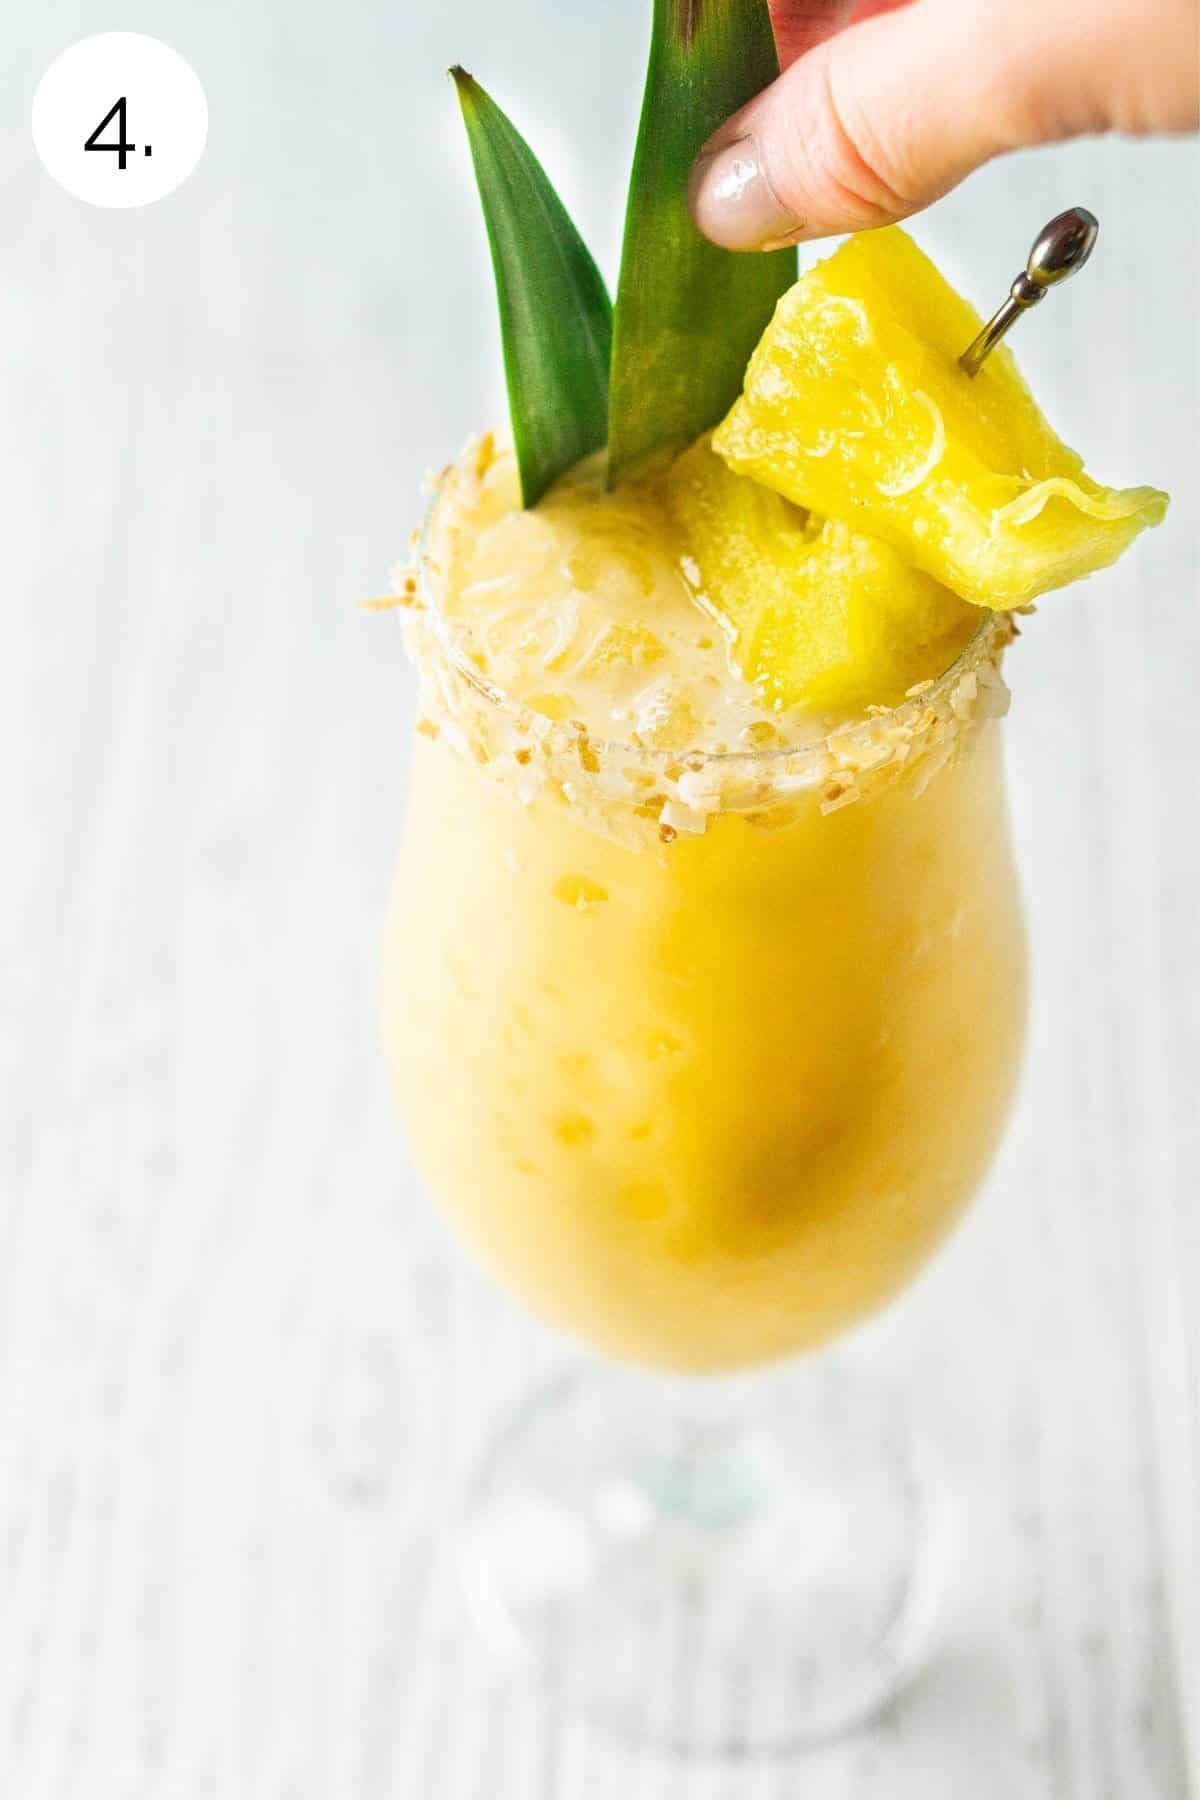 Garnishing the drink with pineapple leaves and pineapple chunks.